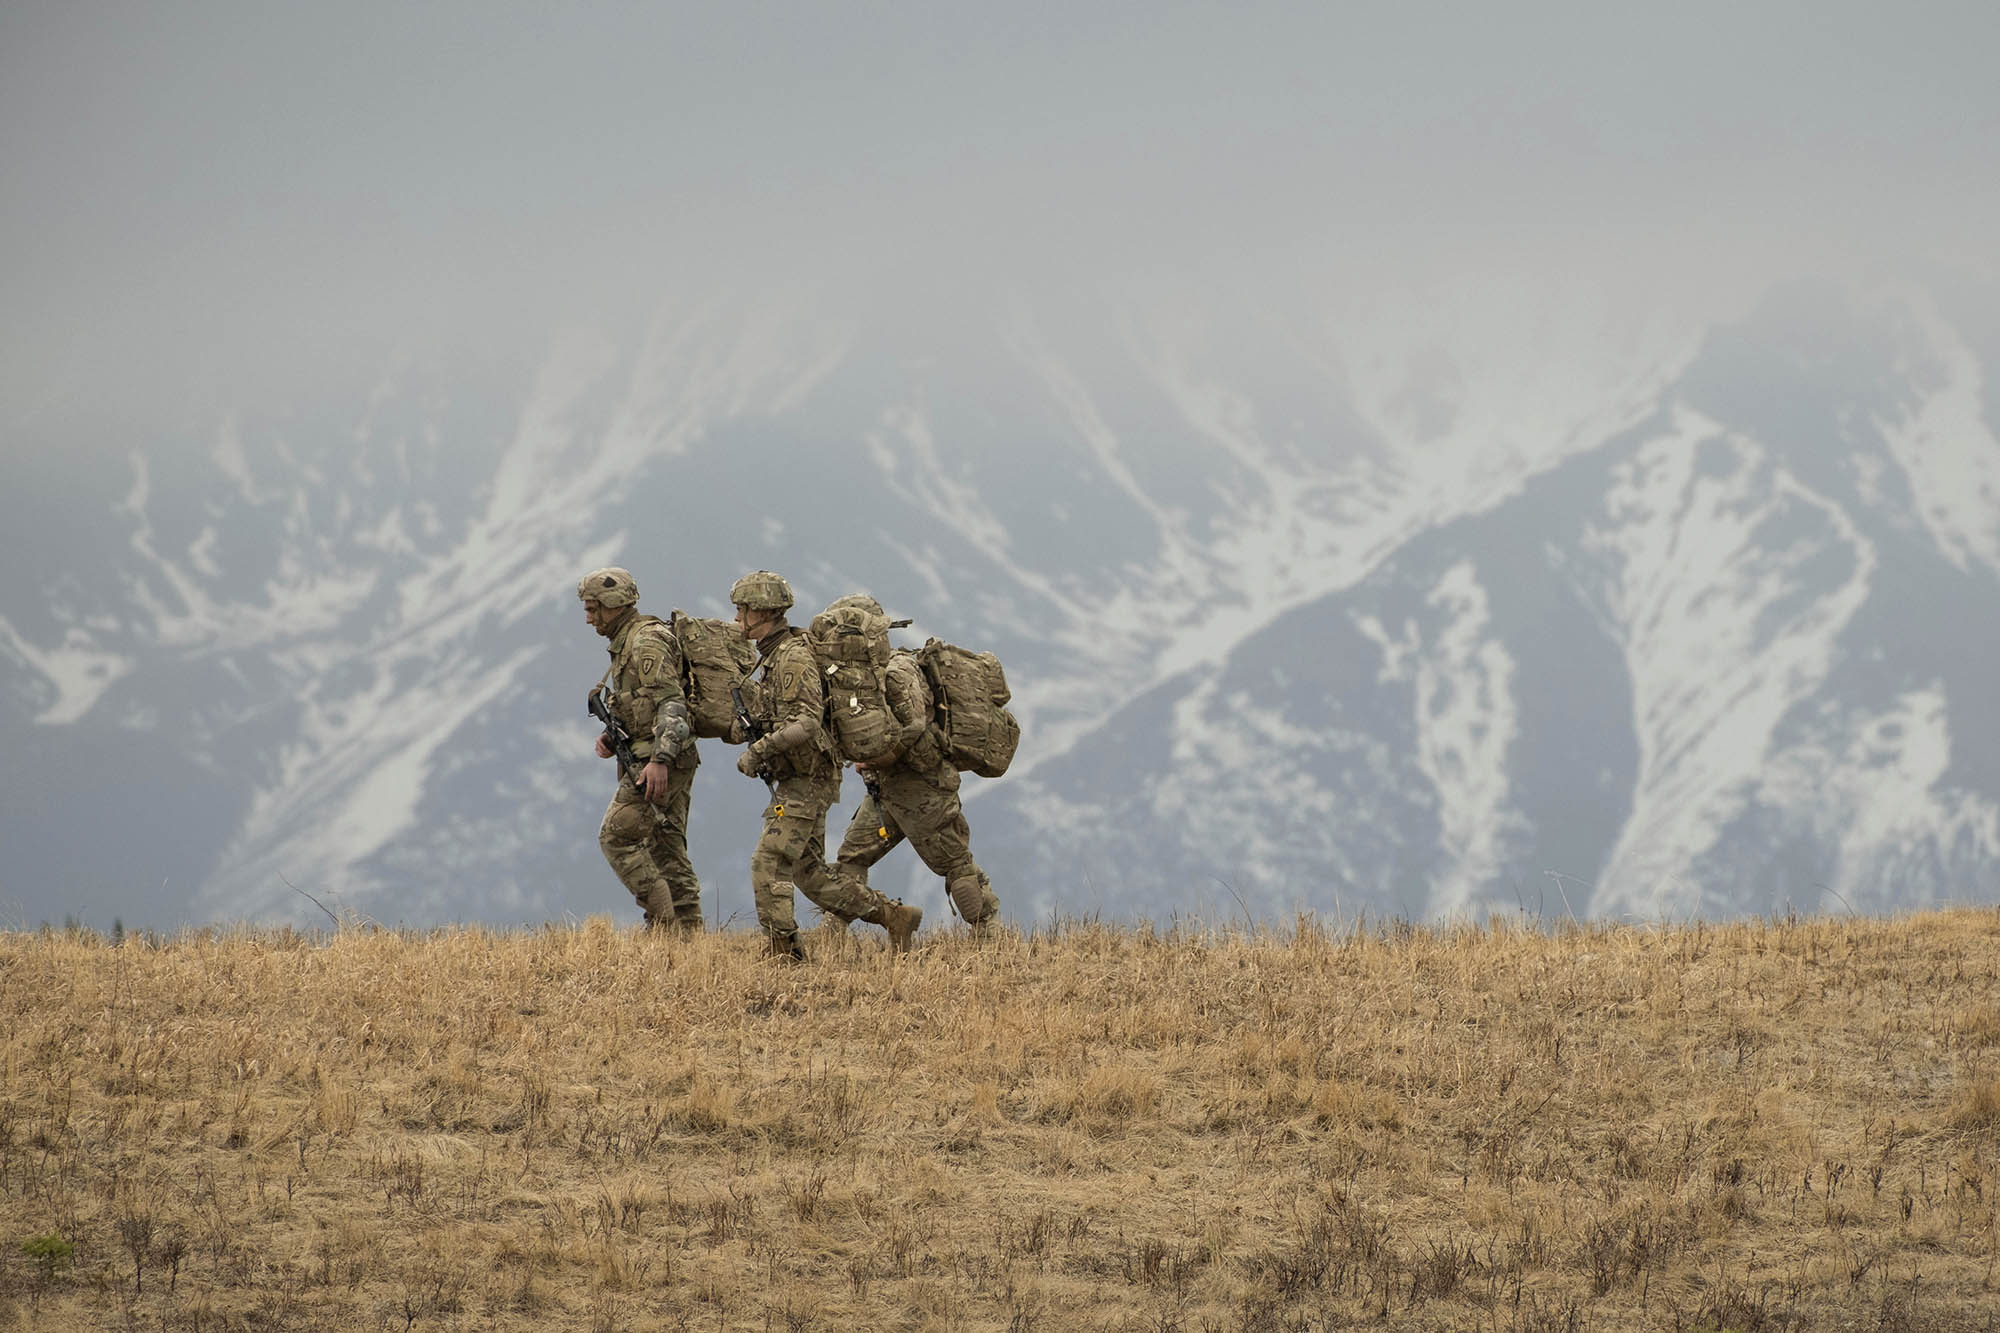 The 4th Brigade Combat Team (Airborne), 25th Infantry Division, U.S. Army Alaska, conduct a Joint Forcible Entry Operation into Allen Army Airfield during exercise Northern Edge 21. (Benjamin Wilson/Army)